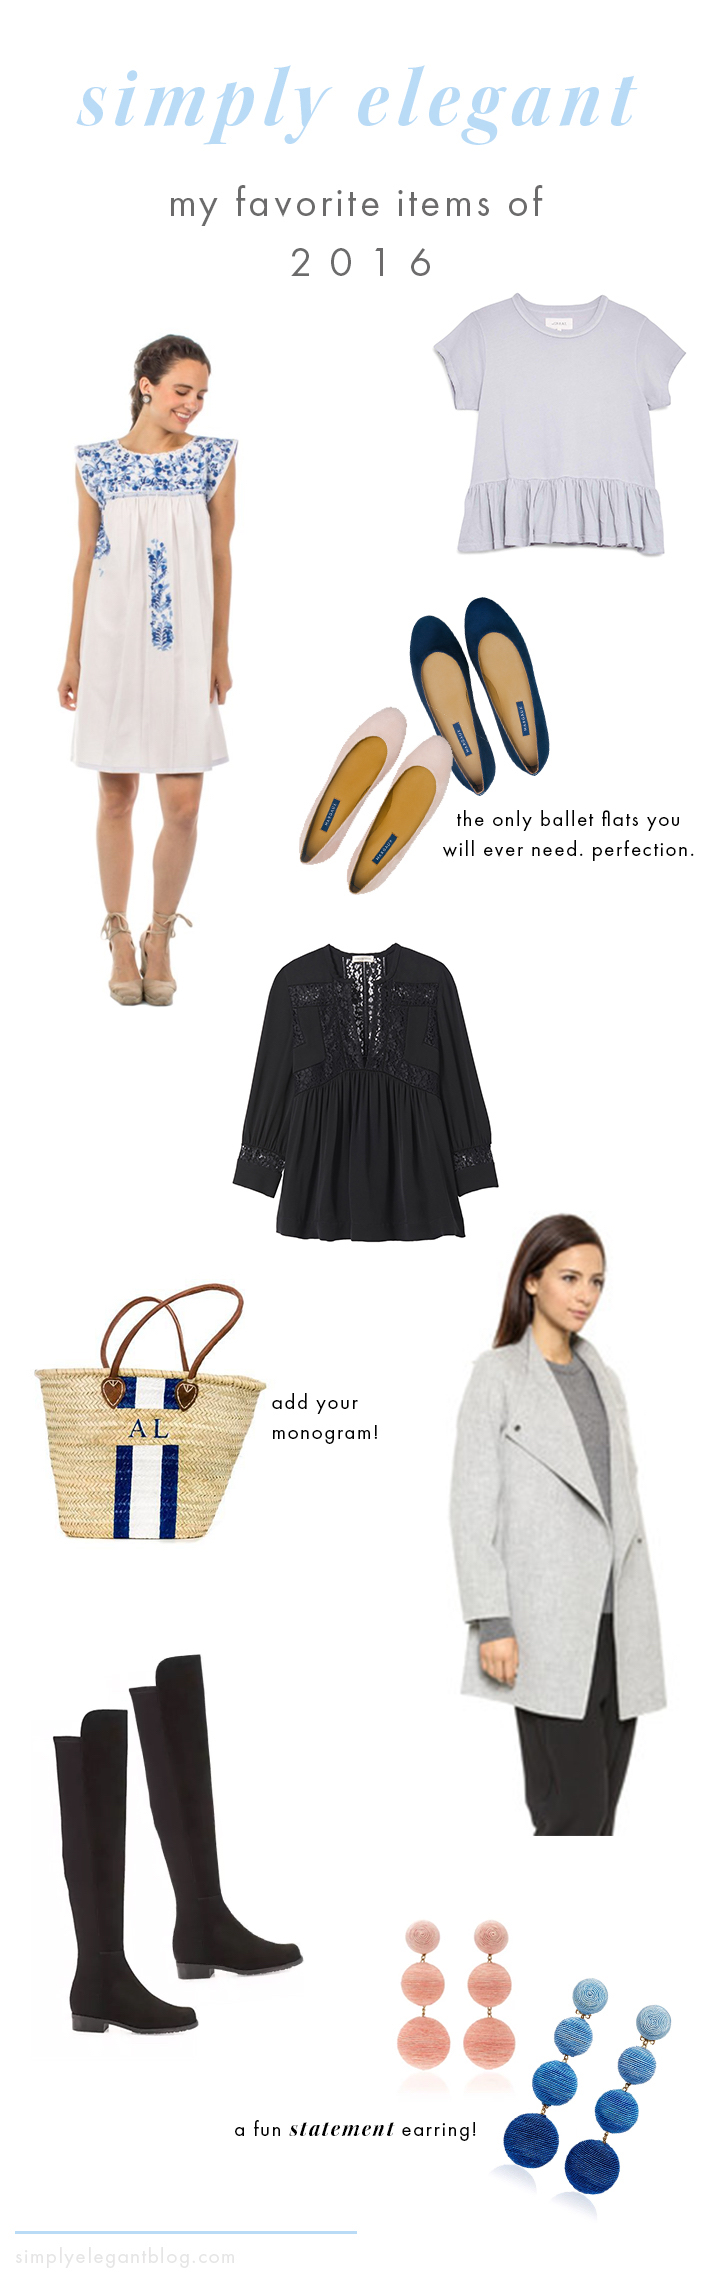 Favorite Items of 2016 - Ballet Flats, Jacket, T-Shirt and more.